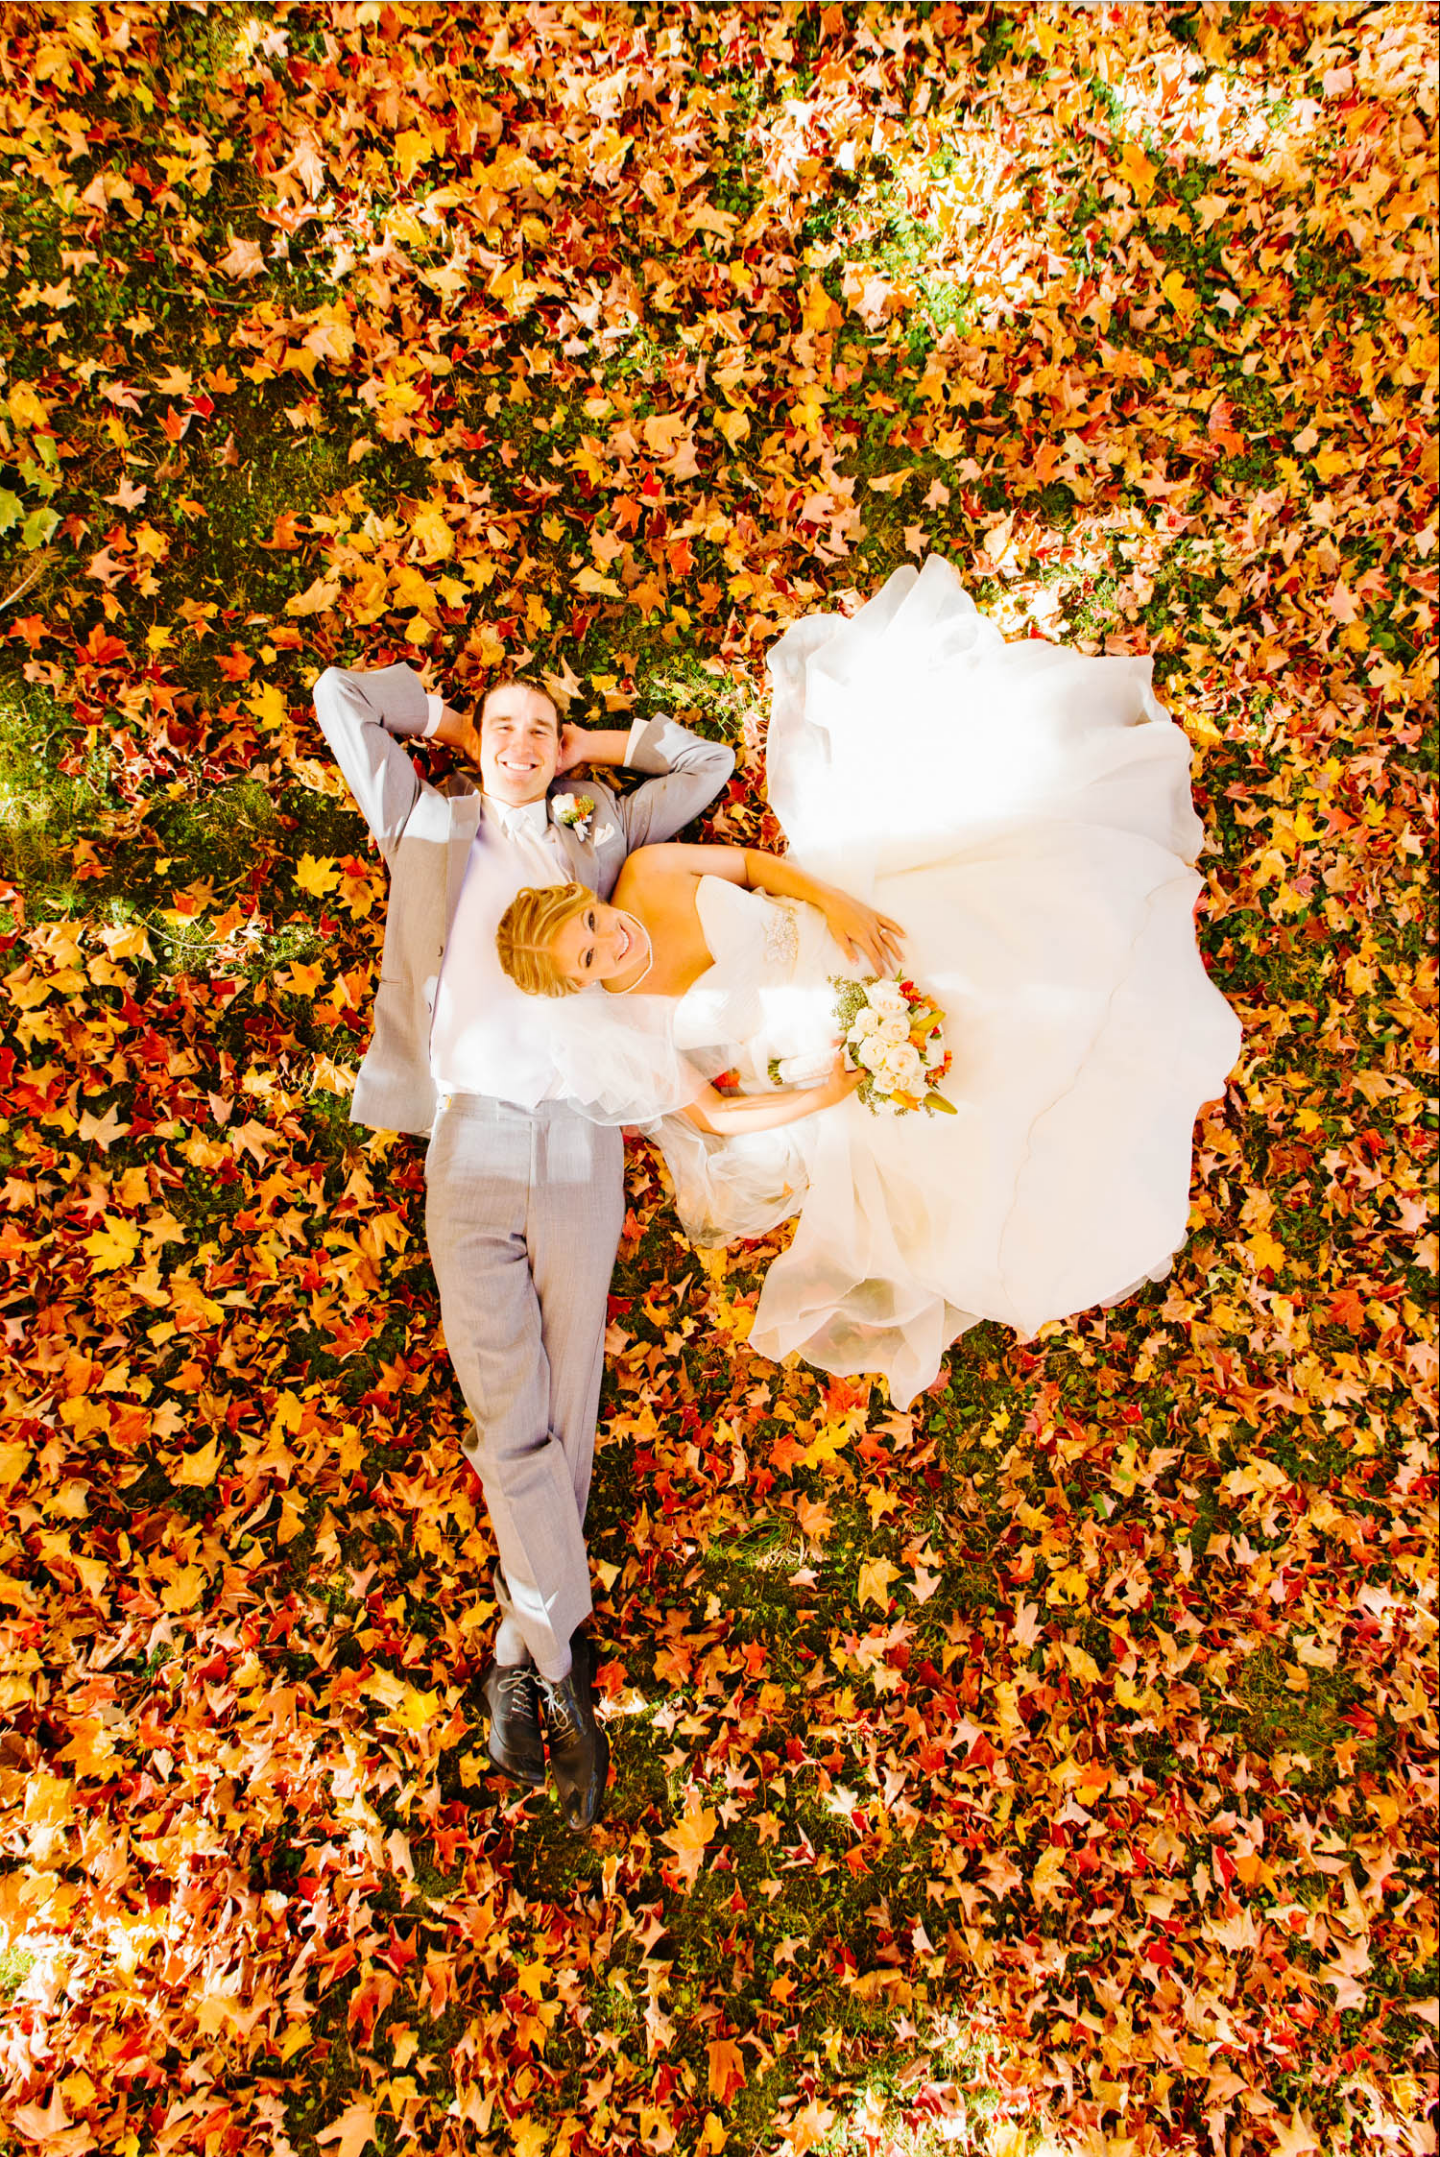 Found this on reddit. Beautiful shot for a fall wedding